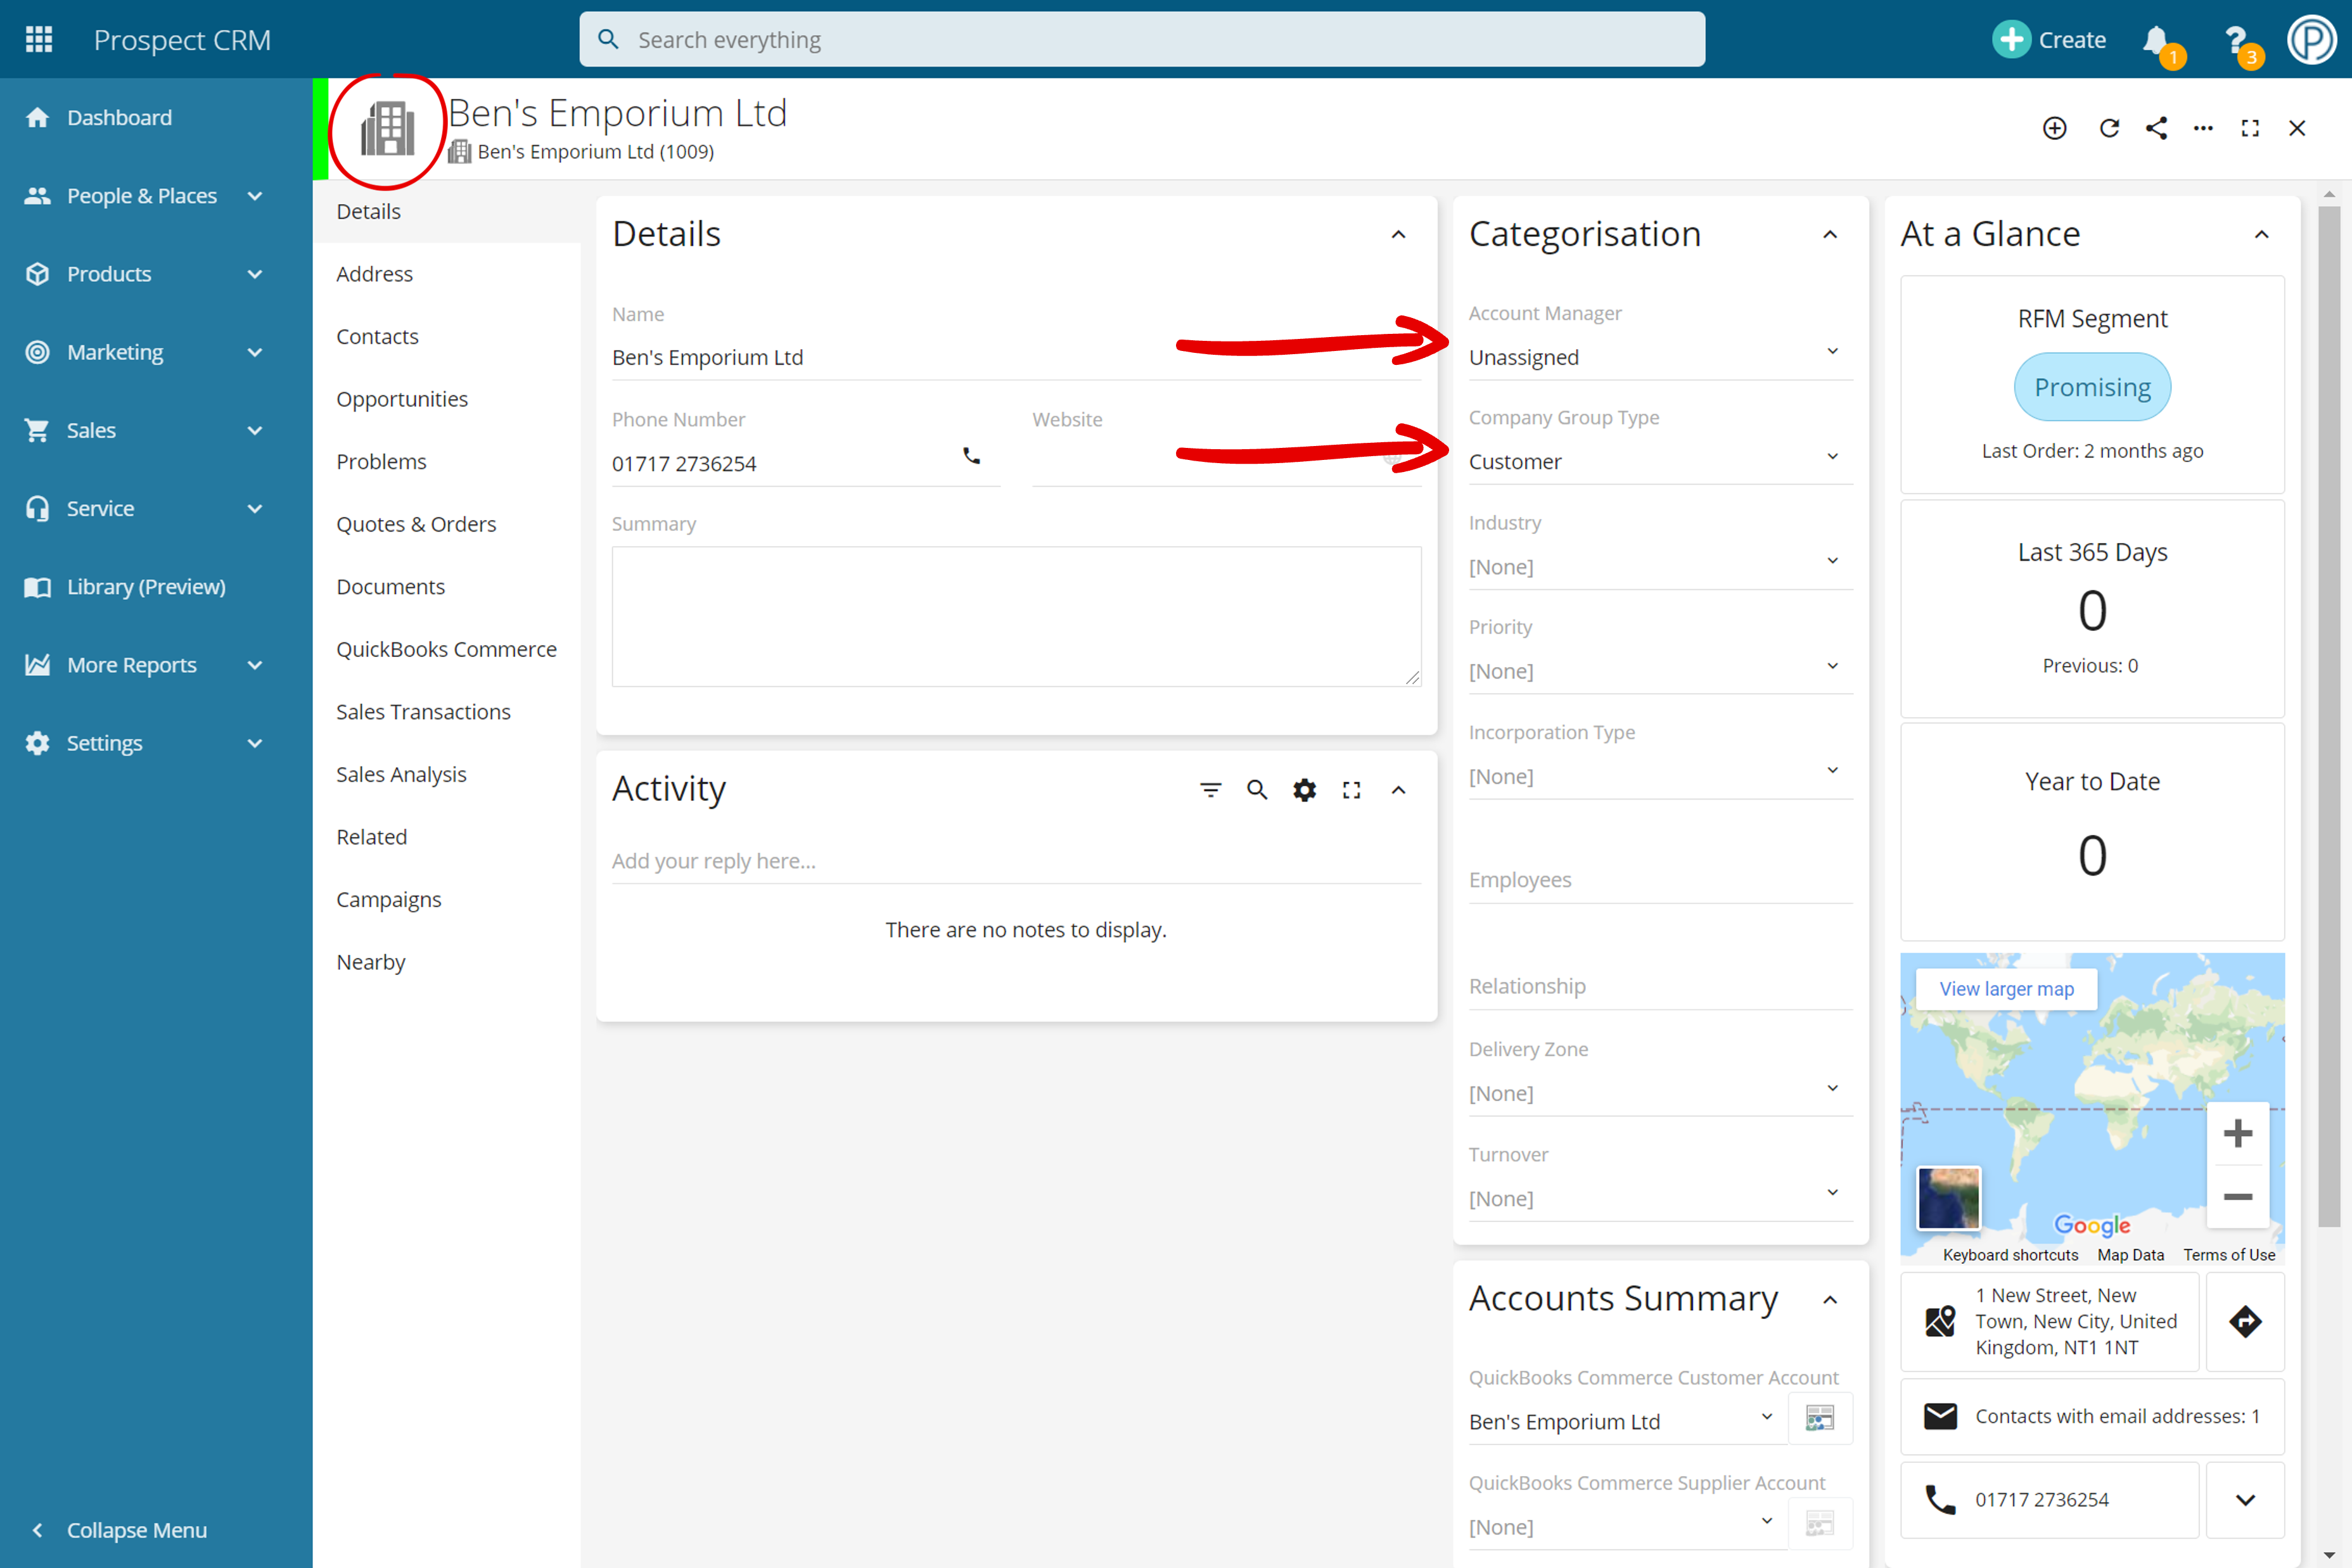 Company Record Layout in Prospect CRM